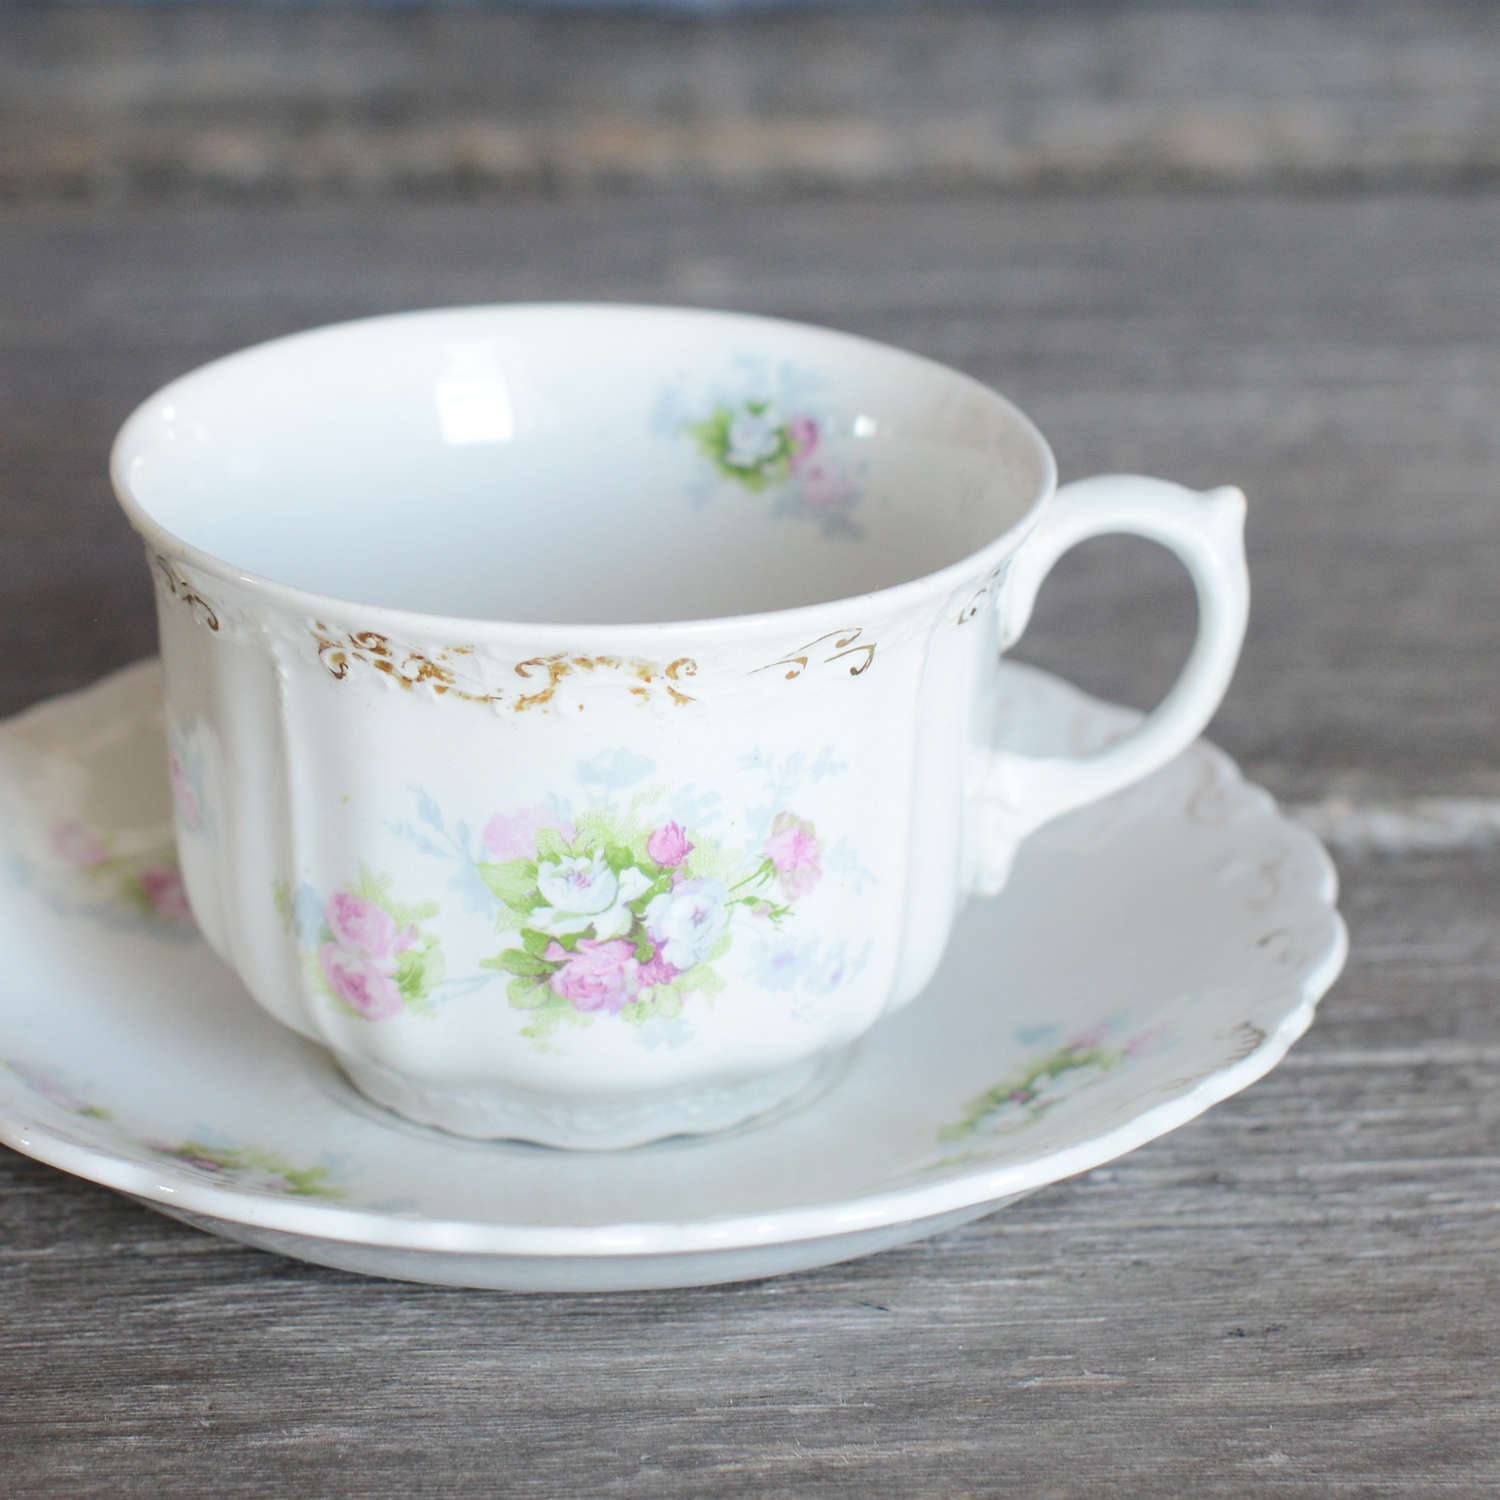 hanley tea cup and saucer - 2 available